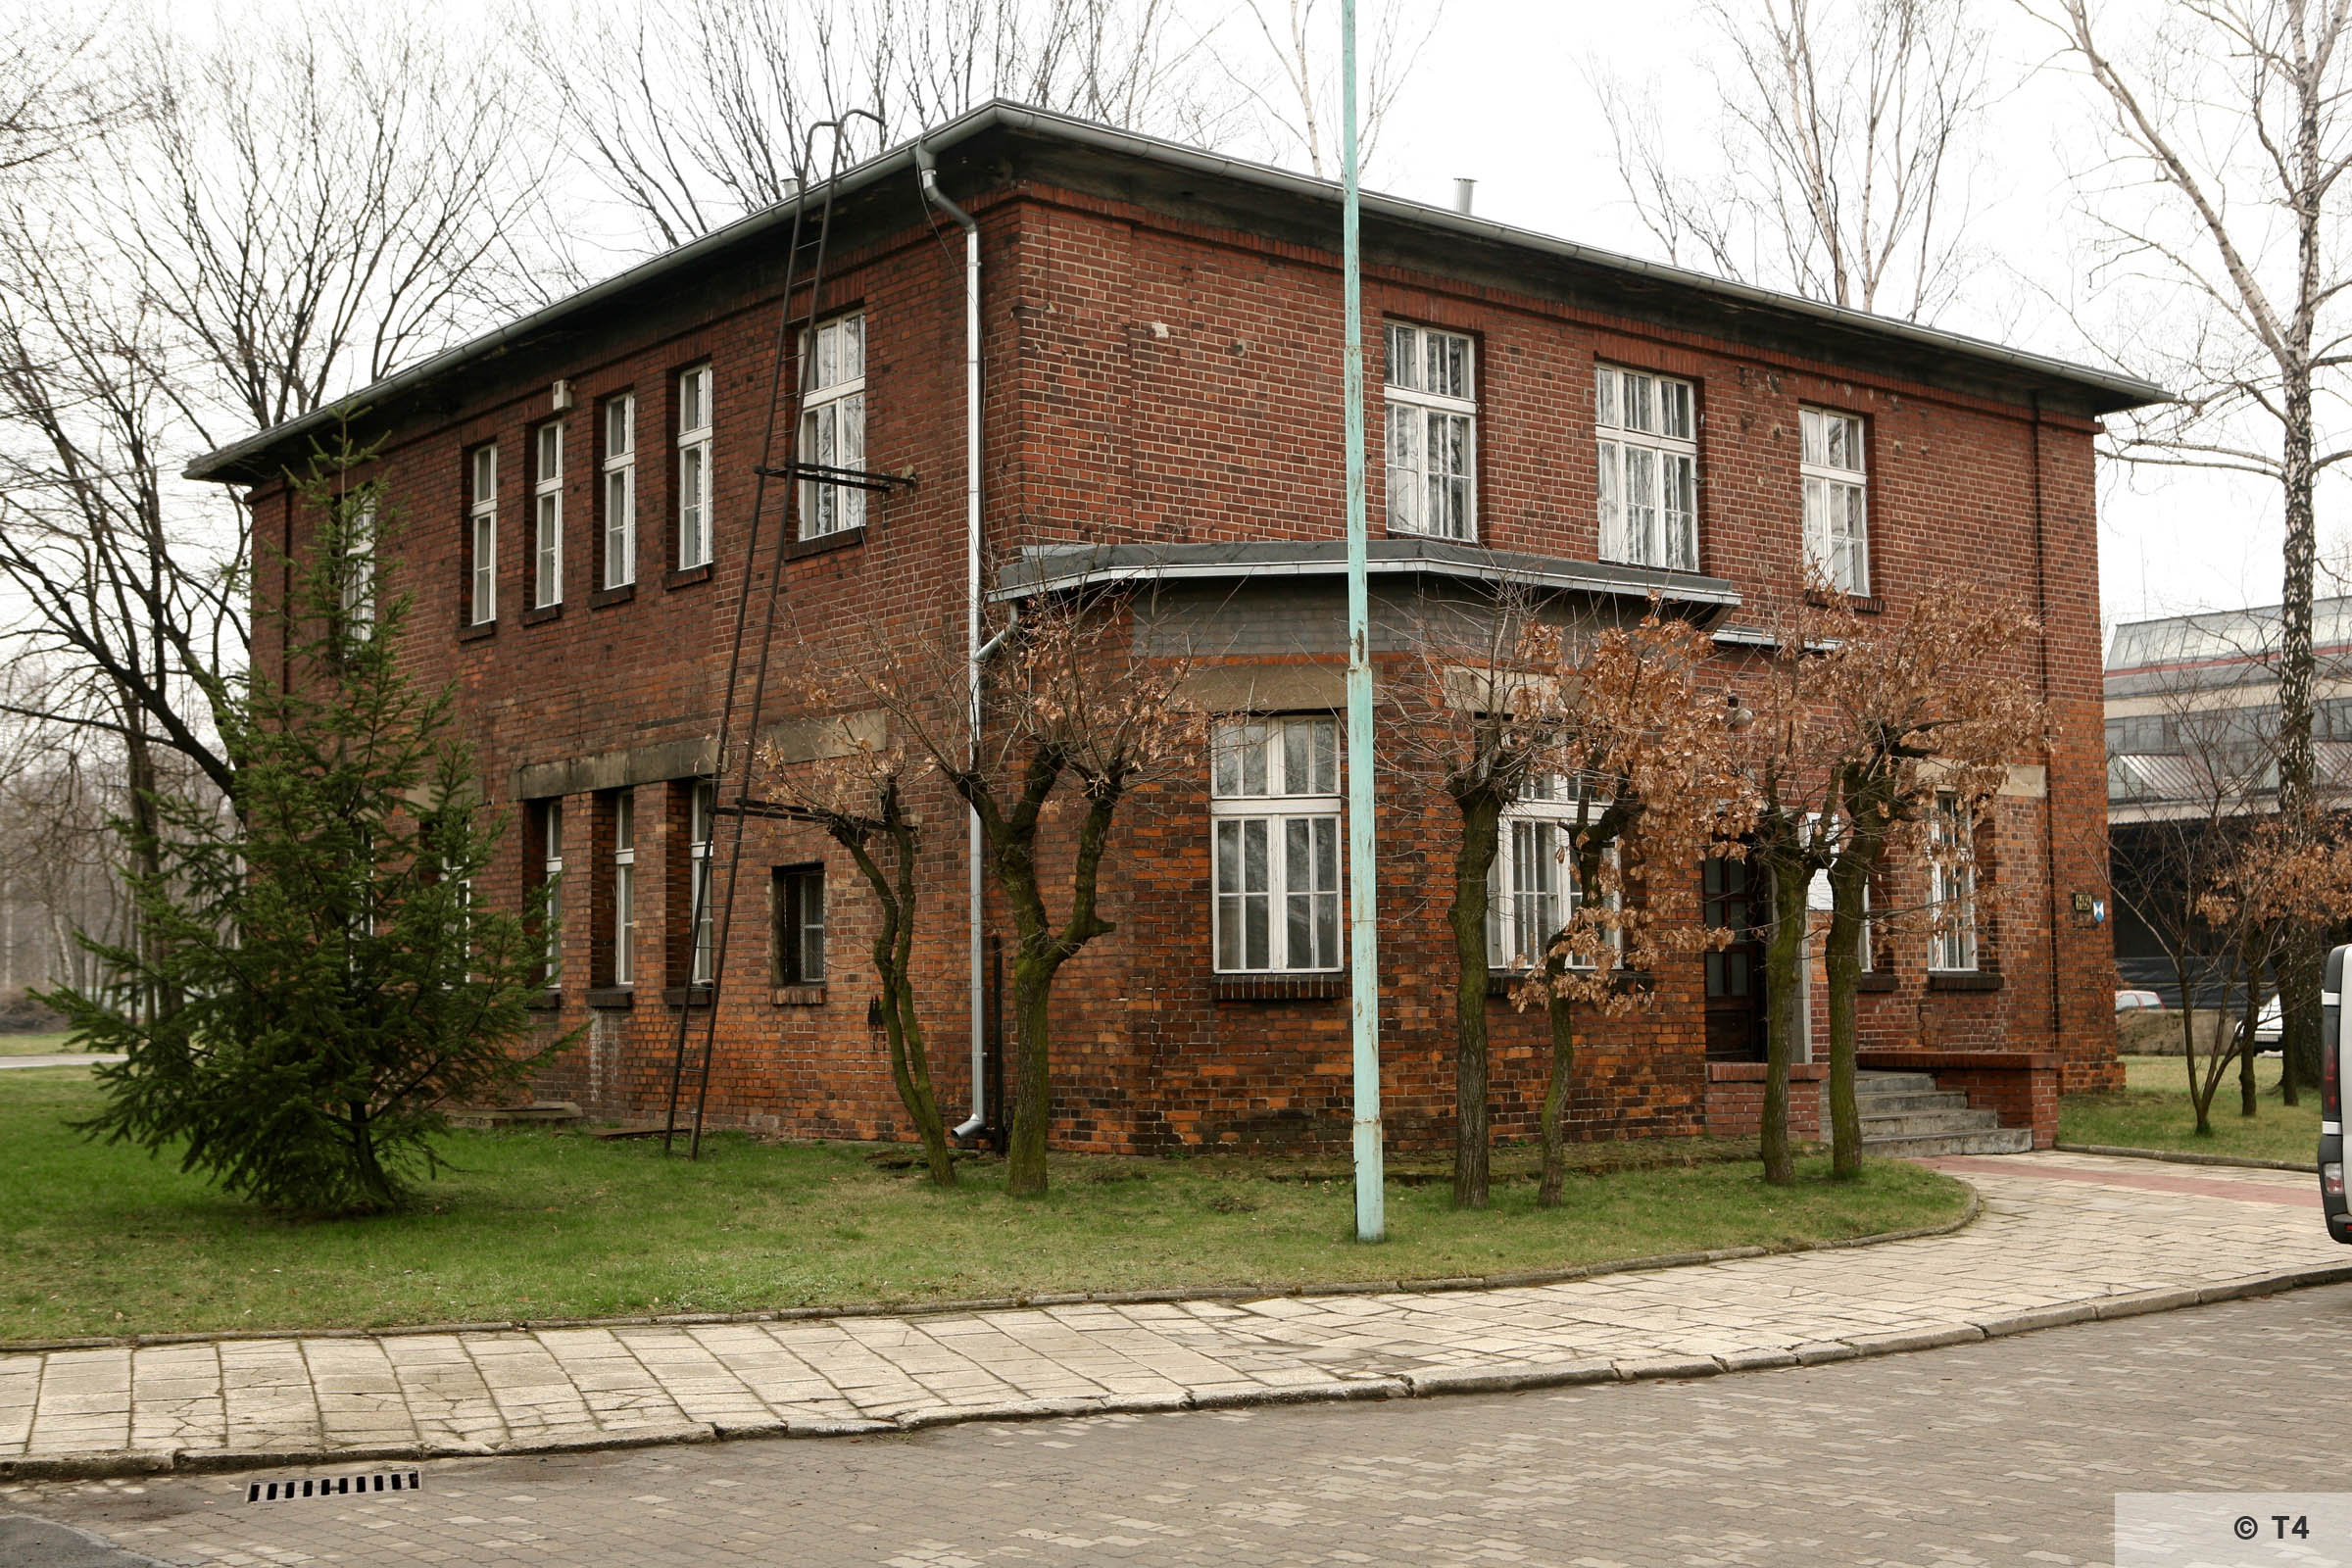 Main administrative building of the sub camp. 2007 T4 4844